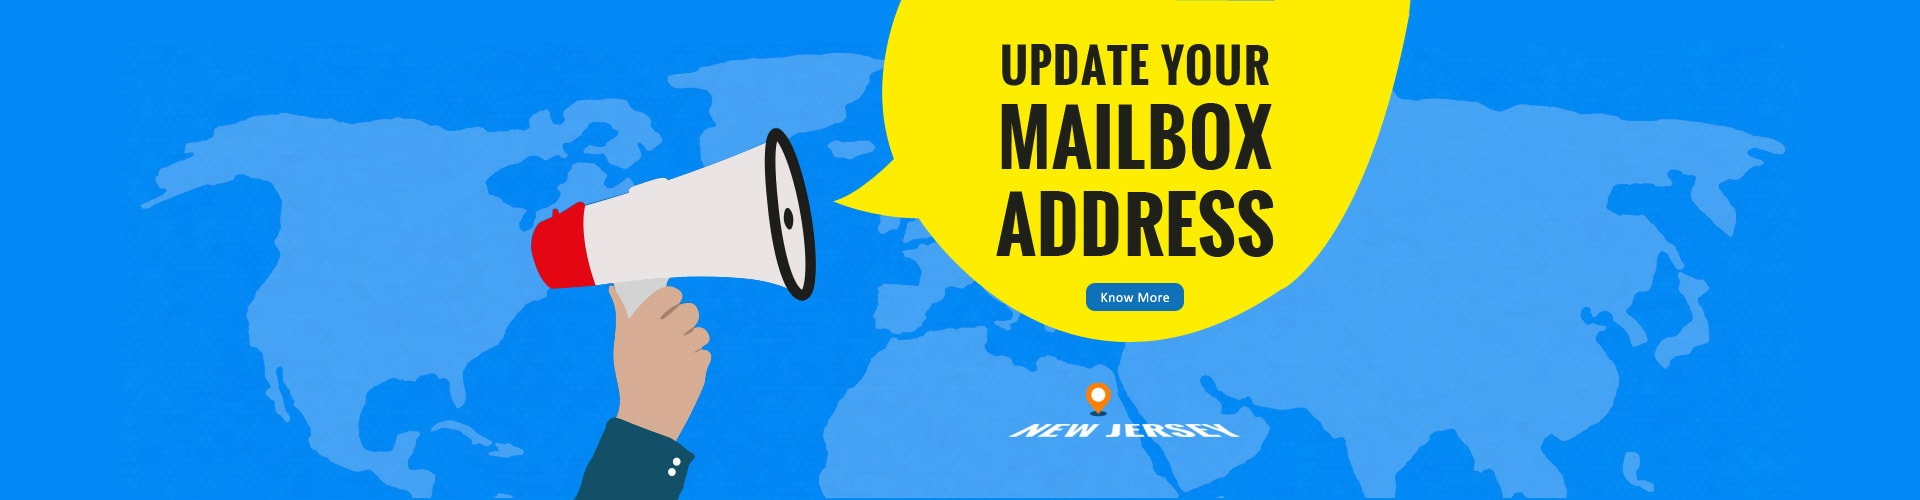 Update your mailbox address